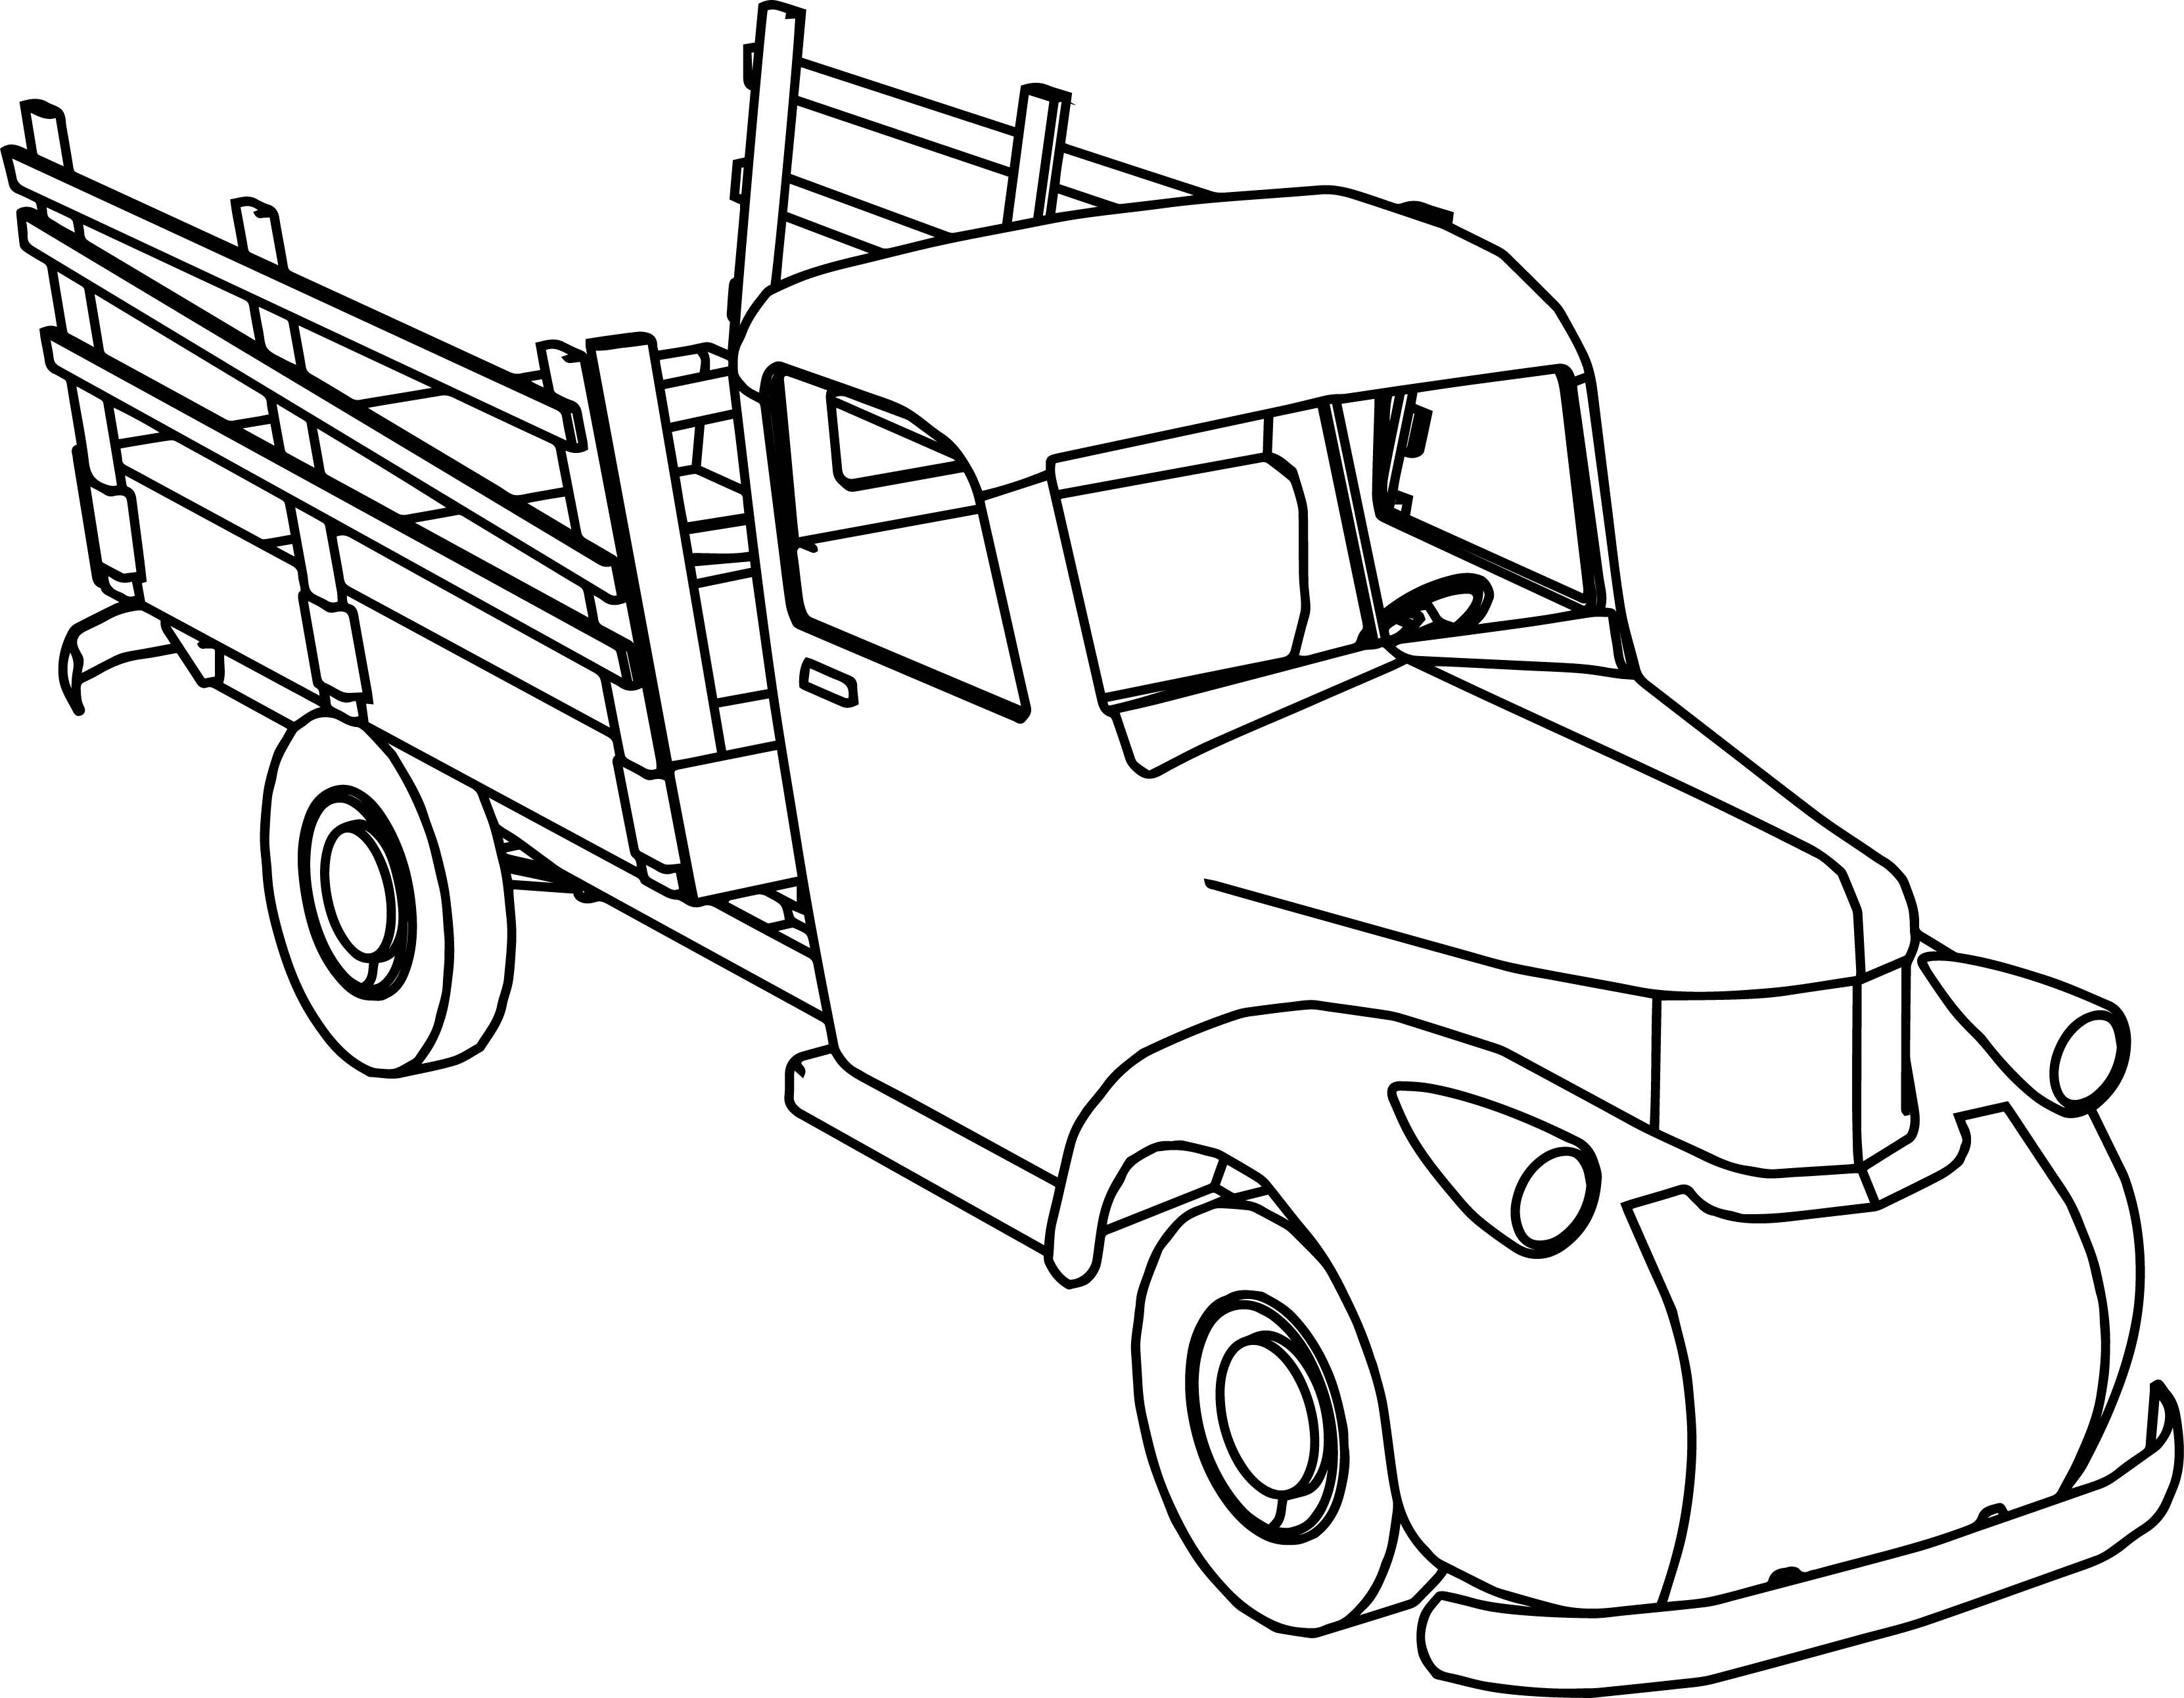 vintage truck coloring page gmc truck coloring pages at getcoloringscom free vintage page truck coloring